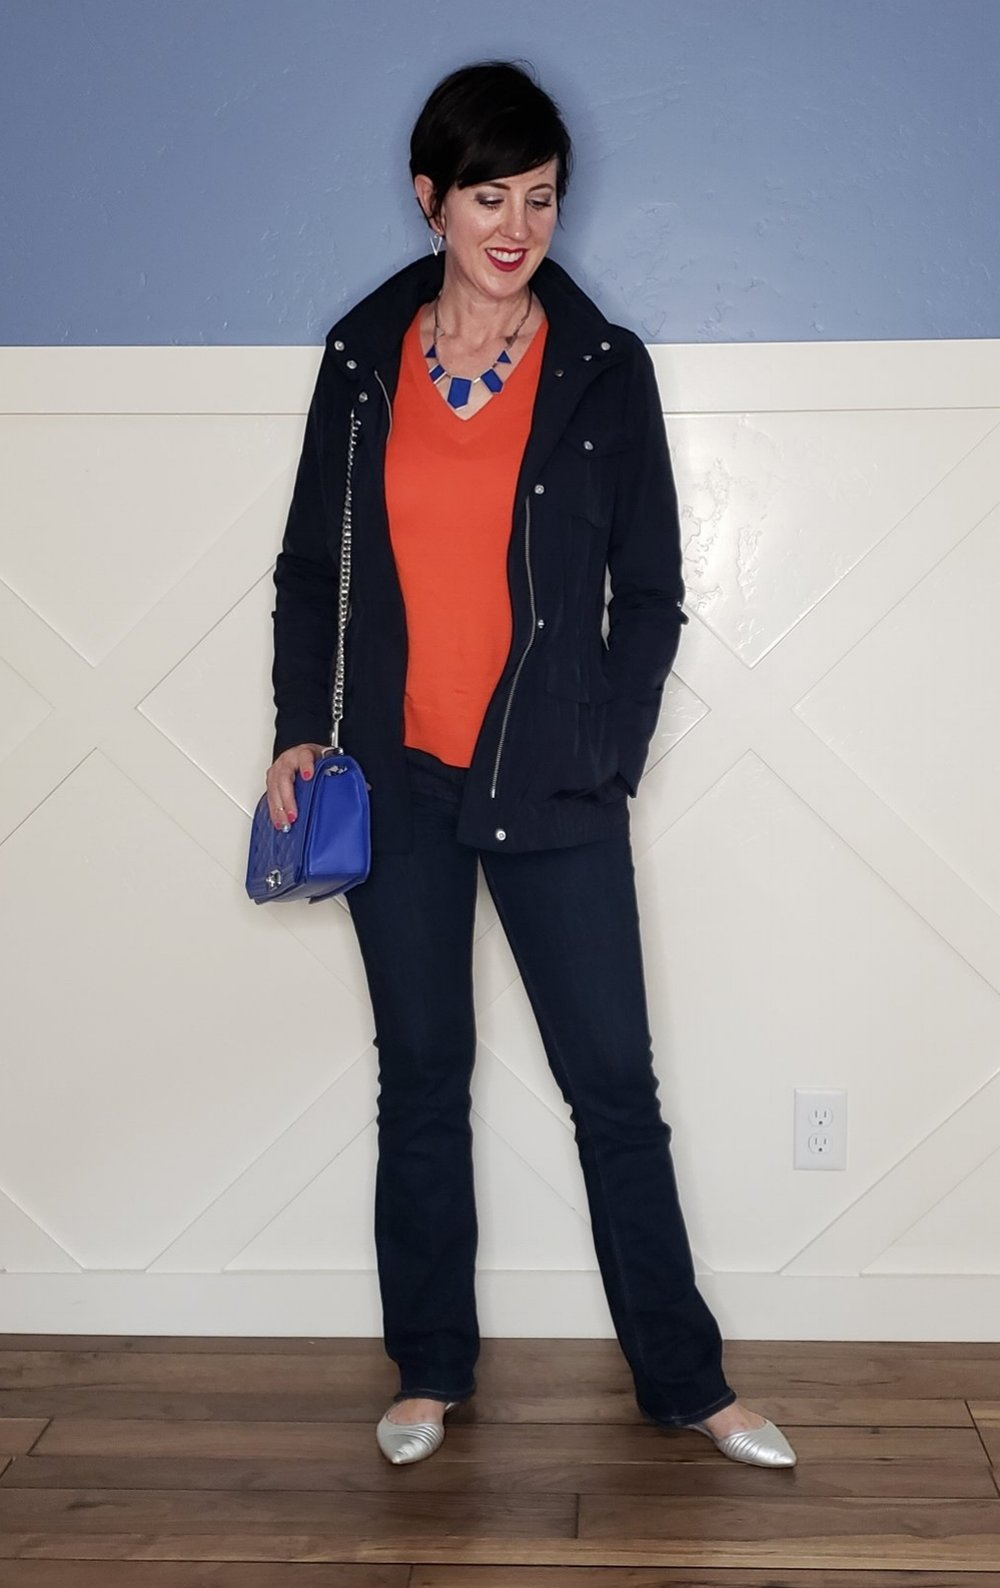 Stunning Style. Bold everyday style from a busy stay-at-home mom of 6 kids, spring style. Bold colors, bold lips, classic and edgy style outfits. DYT T4 T4/3. Spring outfits.